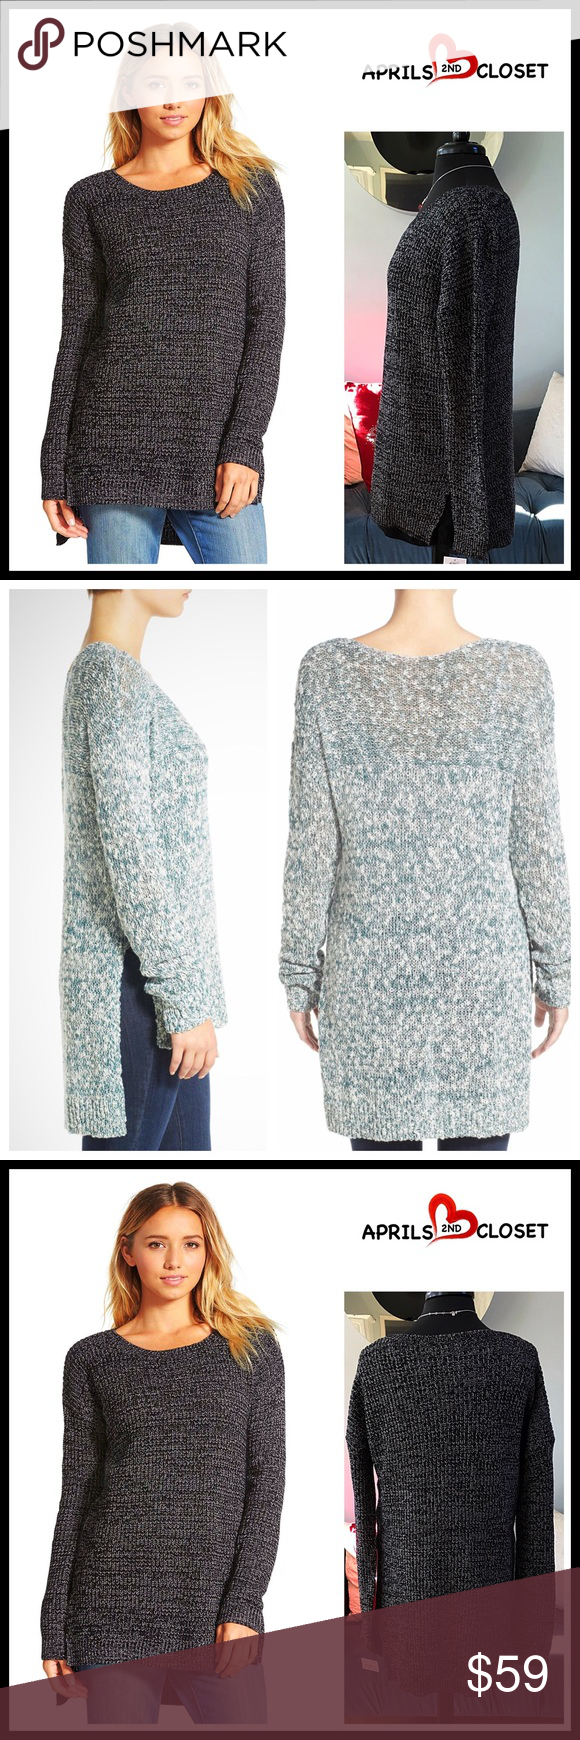 Pullover Sweater Relaxed Fit 'Boyfriend' Tunic NWT | Fair isles ...